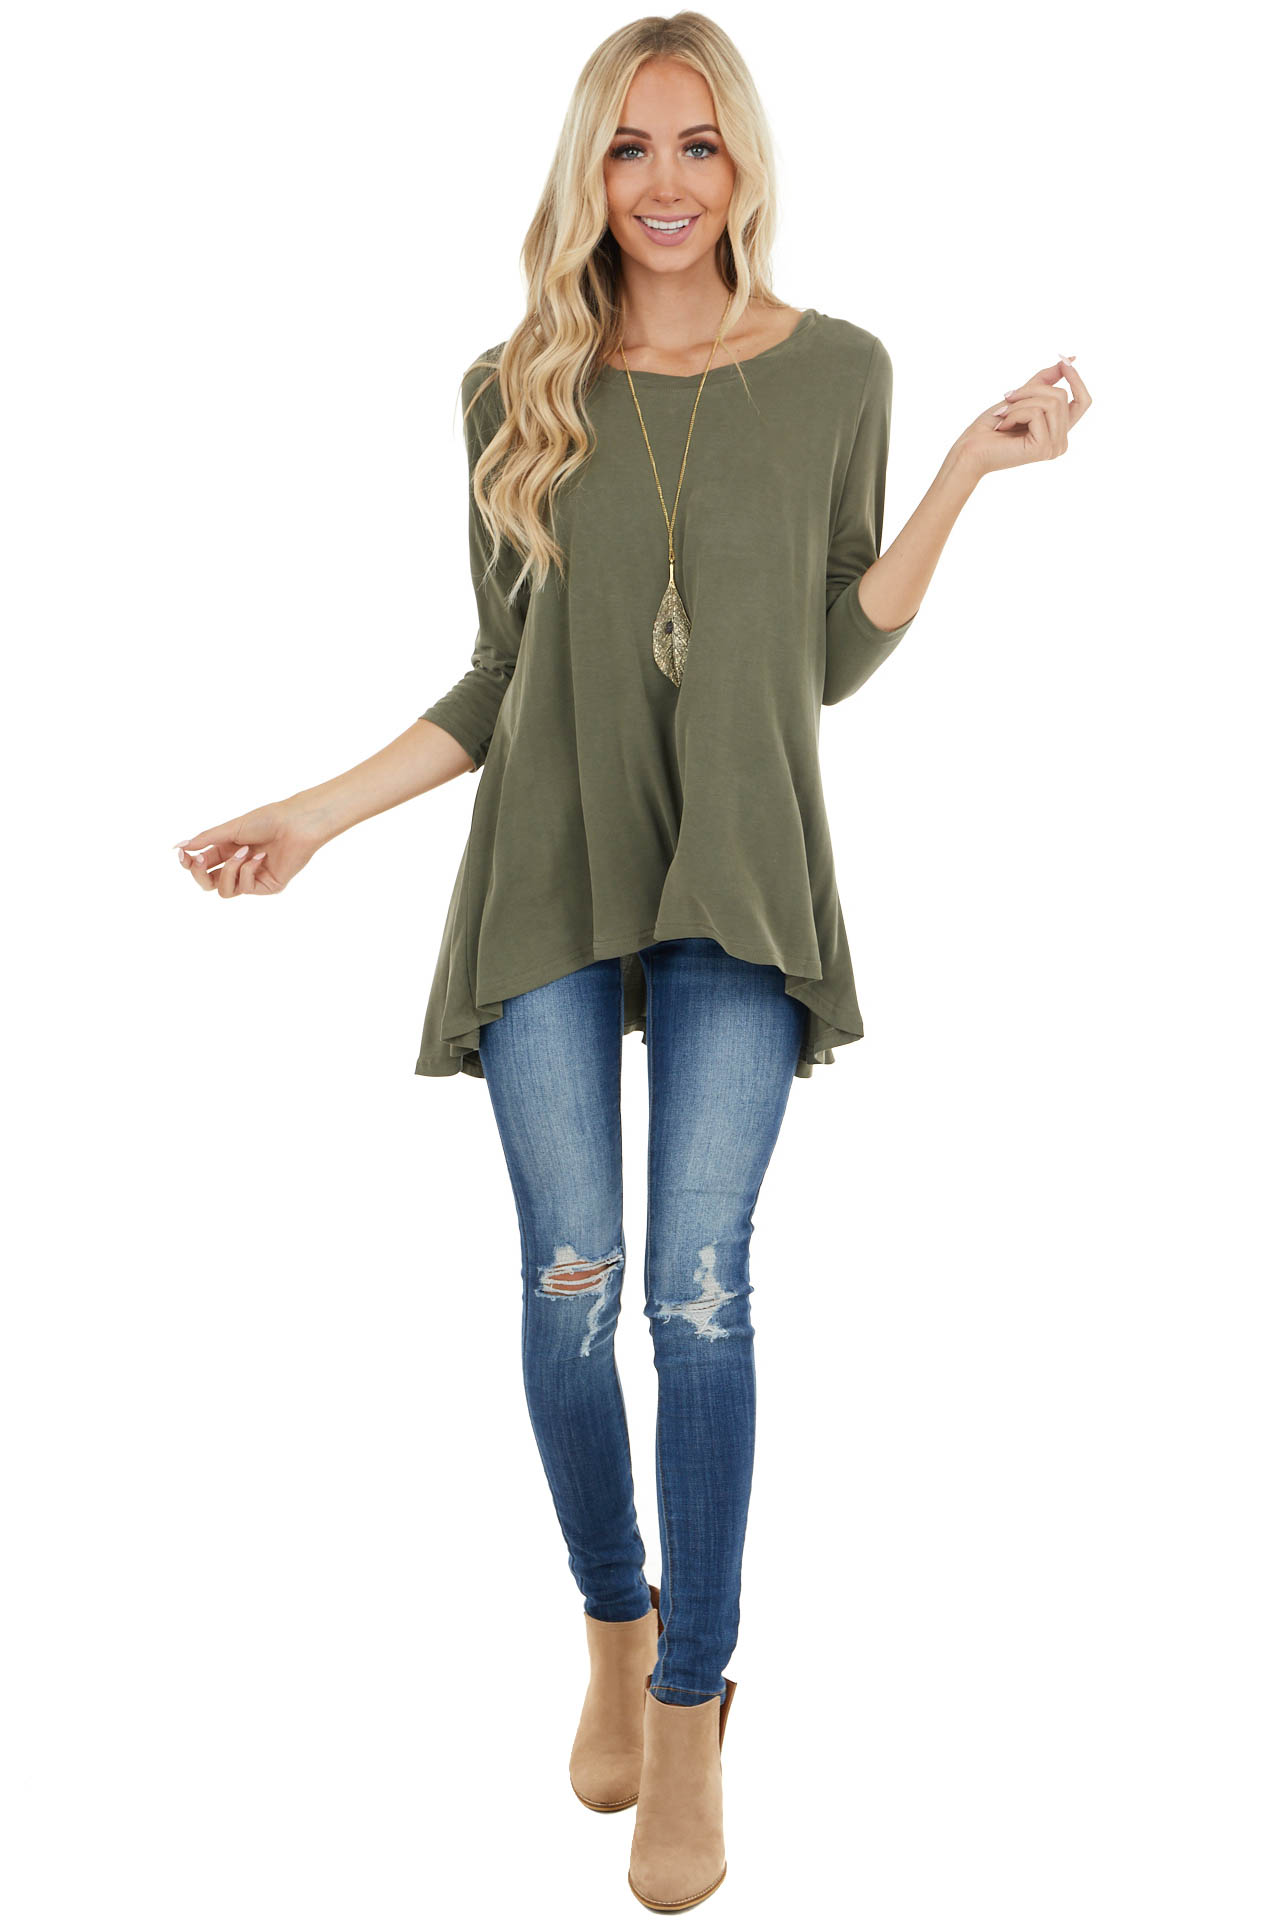 Olive Green 3/4 Sleeve High Low Knit Tunic Top